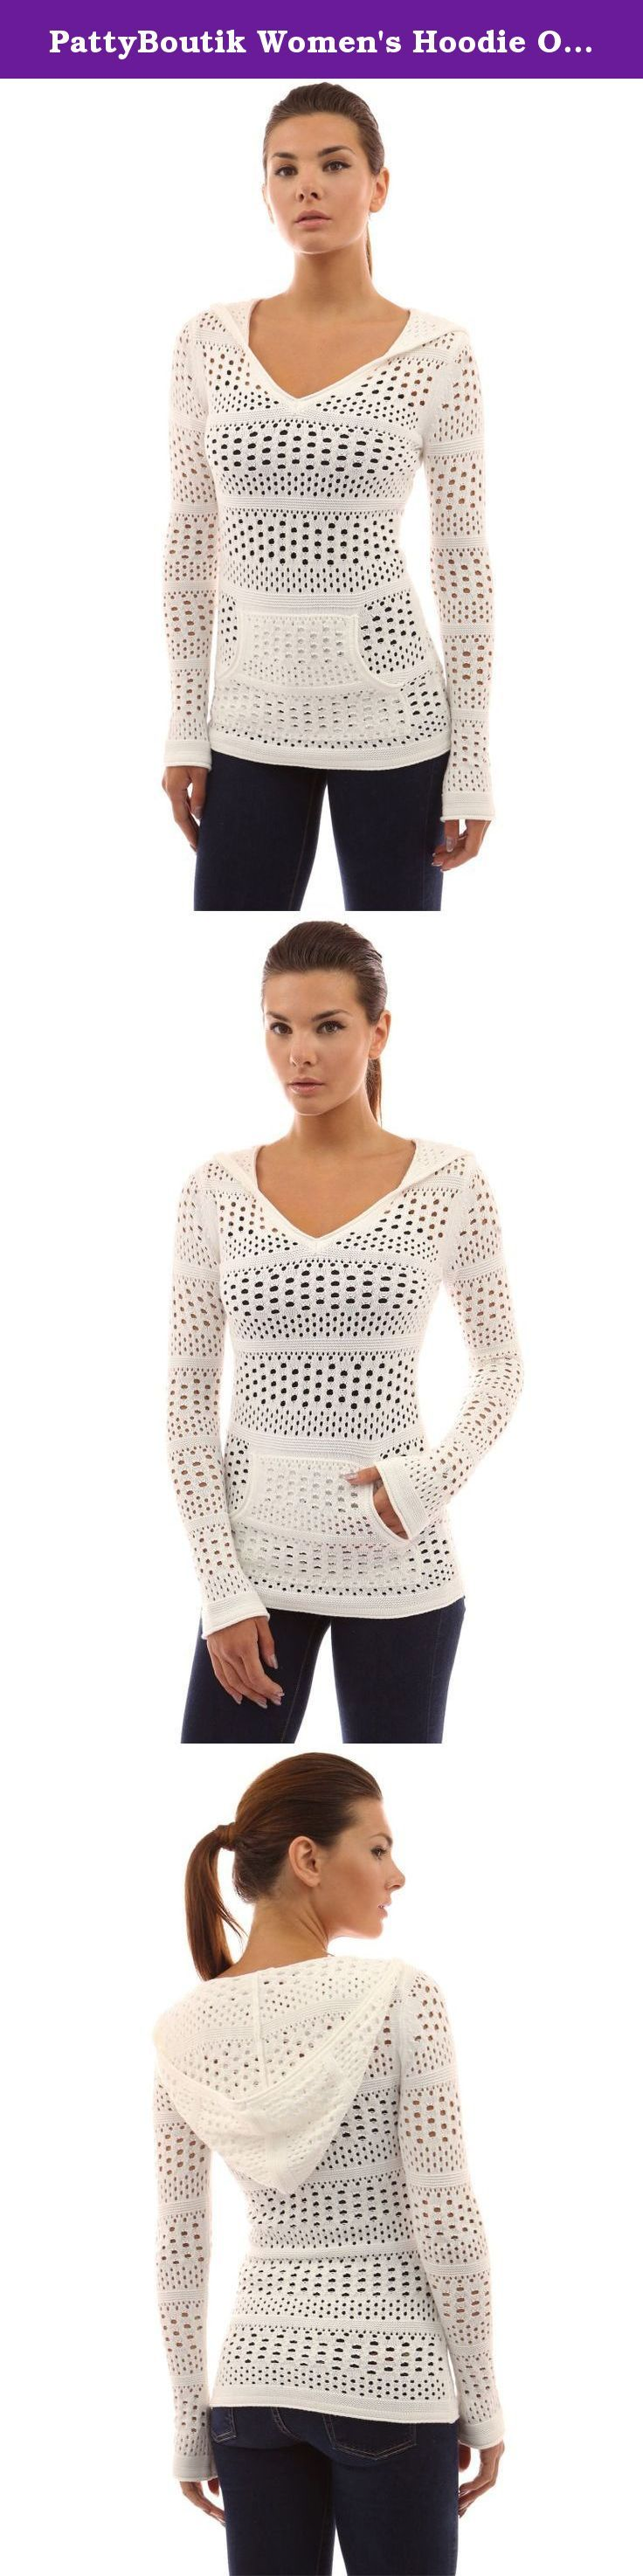 PattyBoutik Women's Hoodie Open Stitch Knit Top (Off-White S). Cotton Hoodie V Neck Long Sleeve Kangaroo Pocket Open Stitch Knit Top Poncho. The camisole is not included. Model in pictures is 5 feet 8 inches (173cm) tall wearing size S.